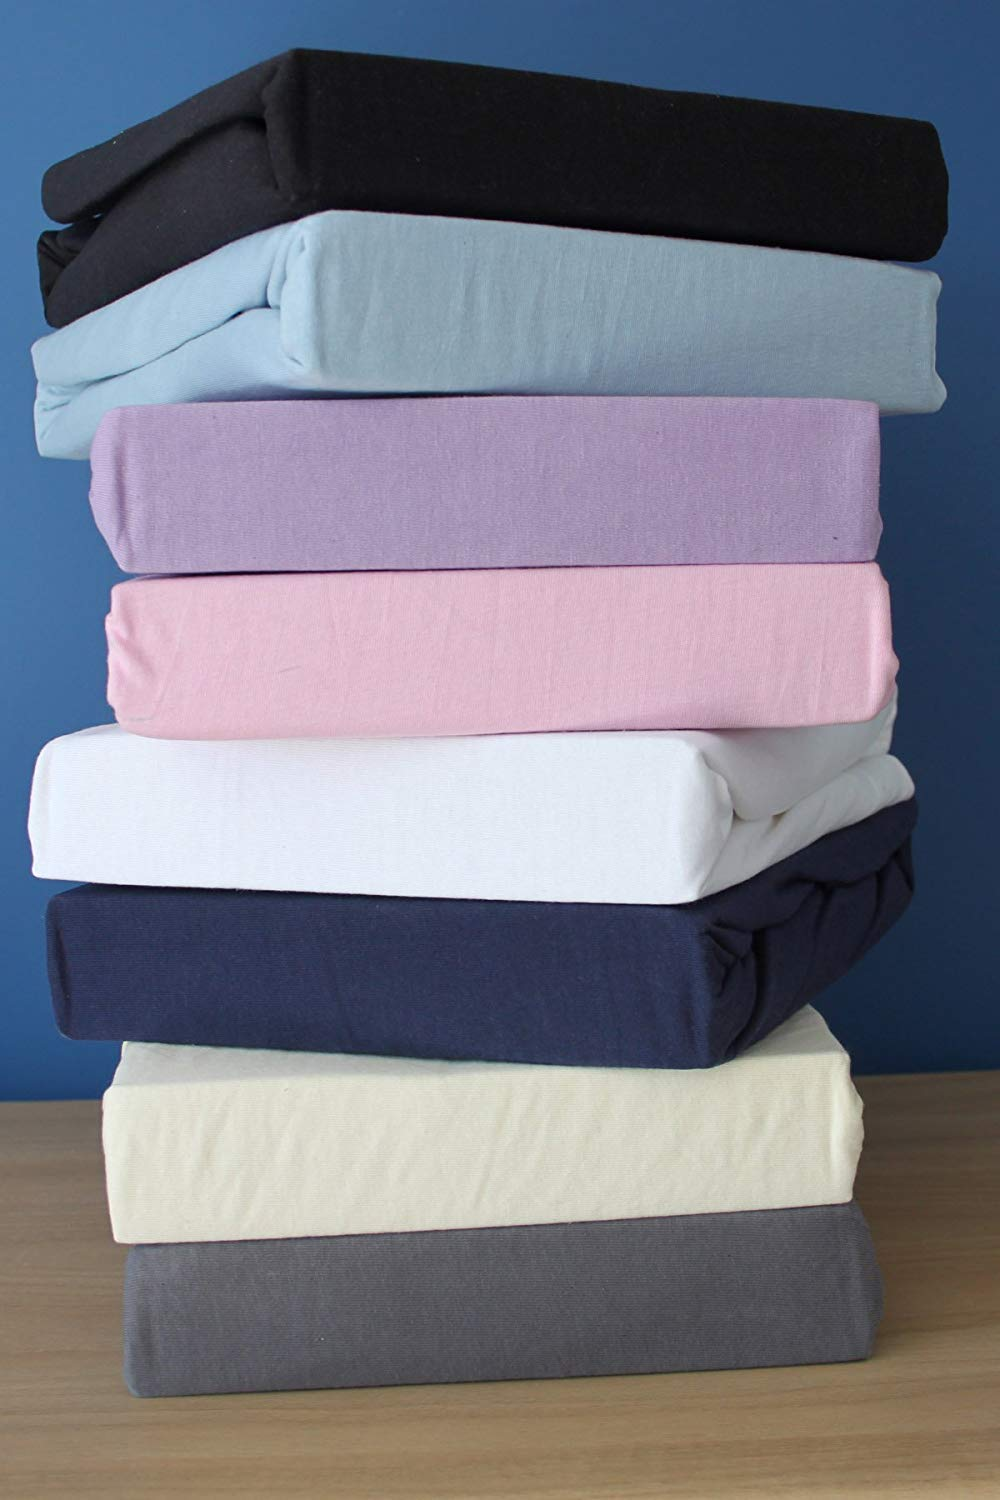 100 cm x 200 cm Family Bedding 100 Percent Cotton Jersey Single Bed Fitted Sheet Lilac